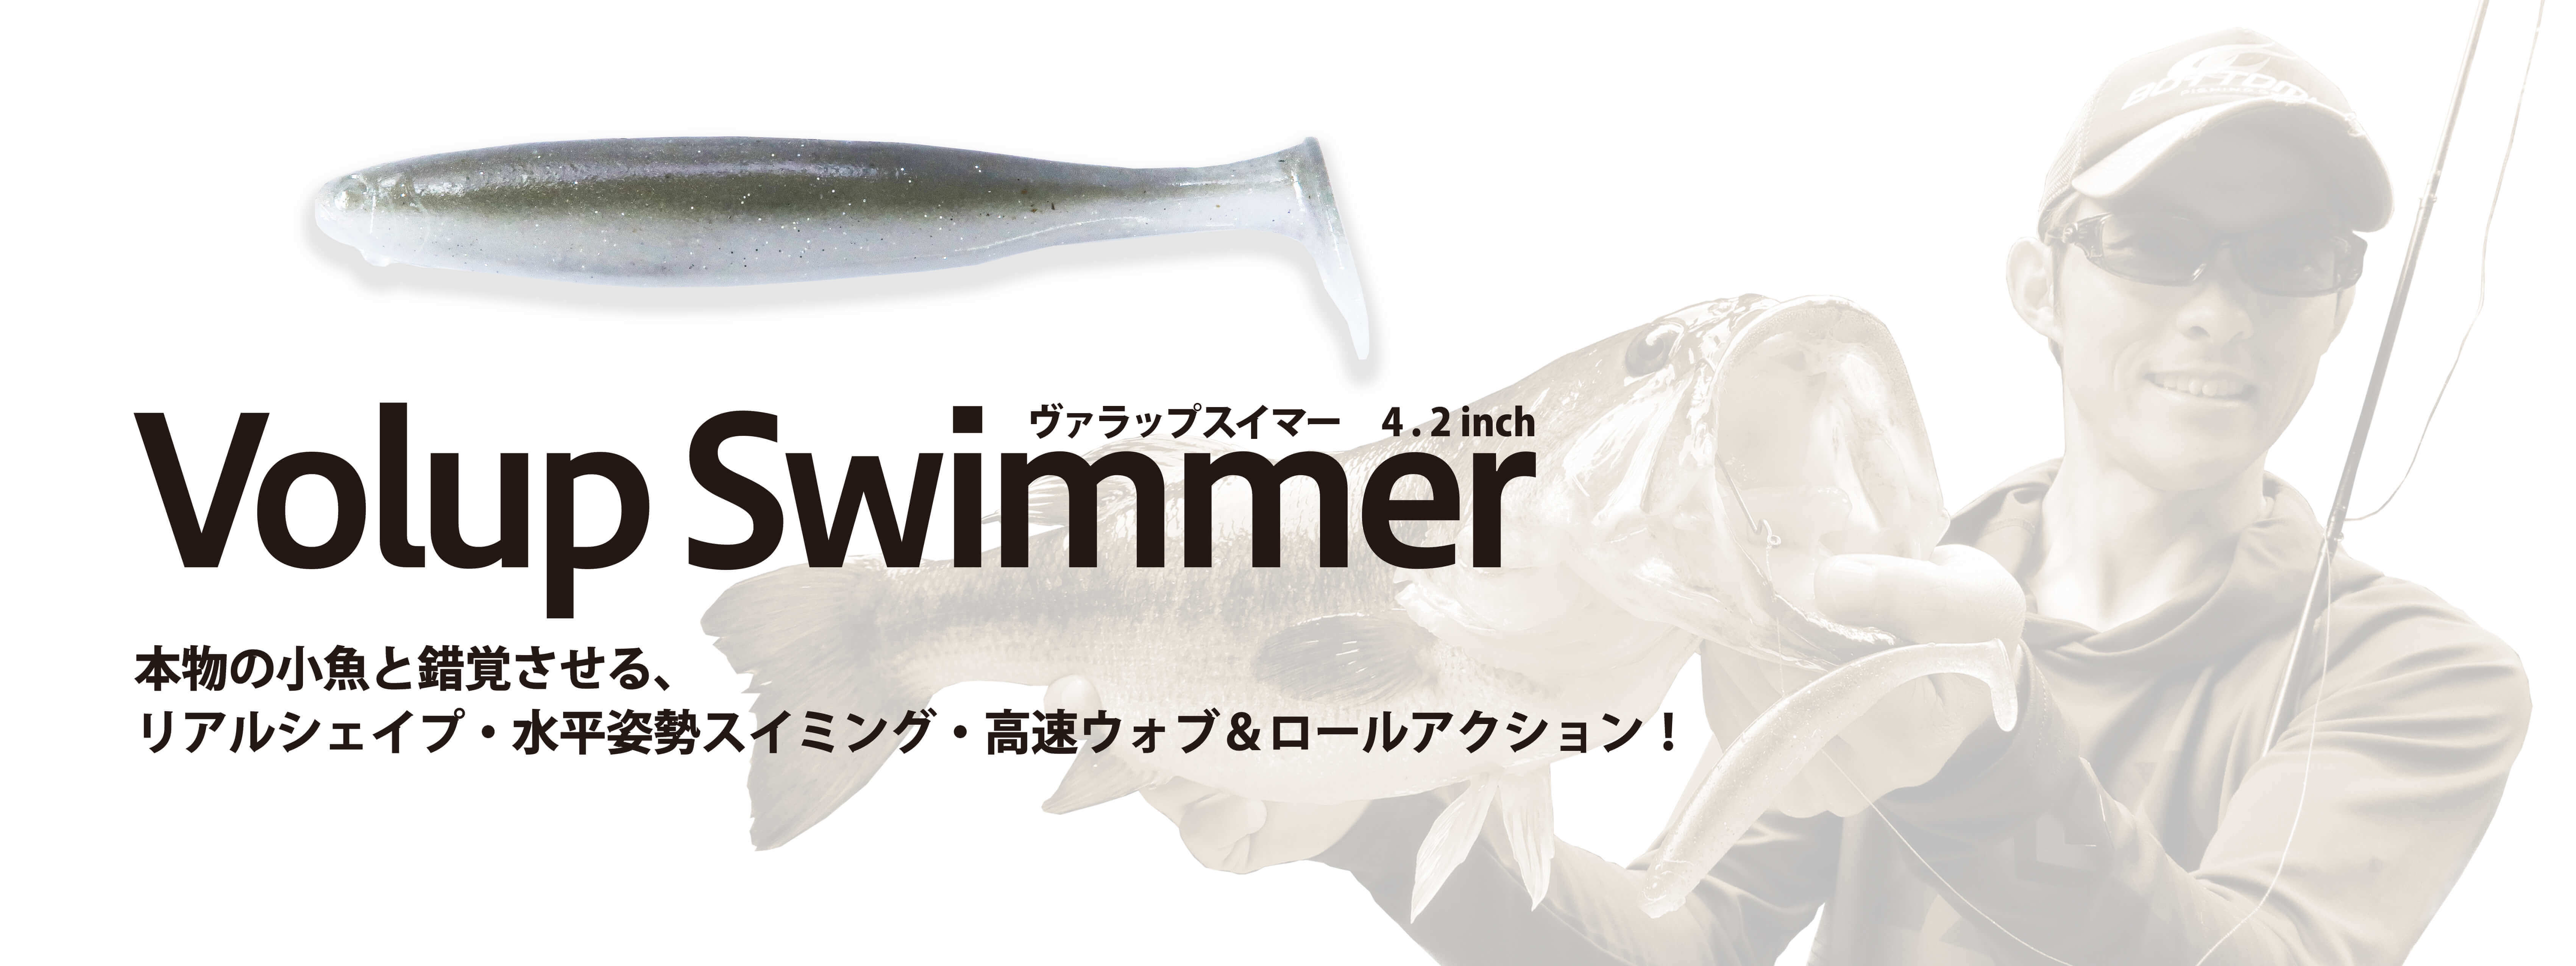 Volup Swimmer